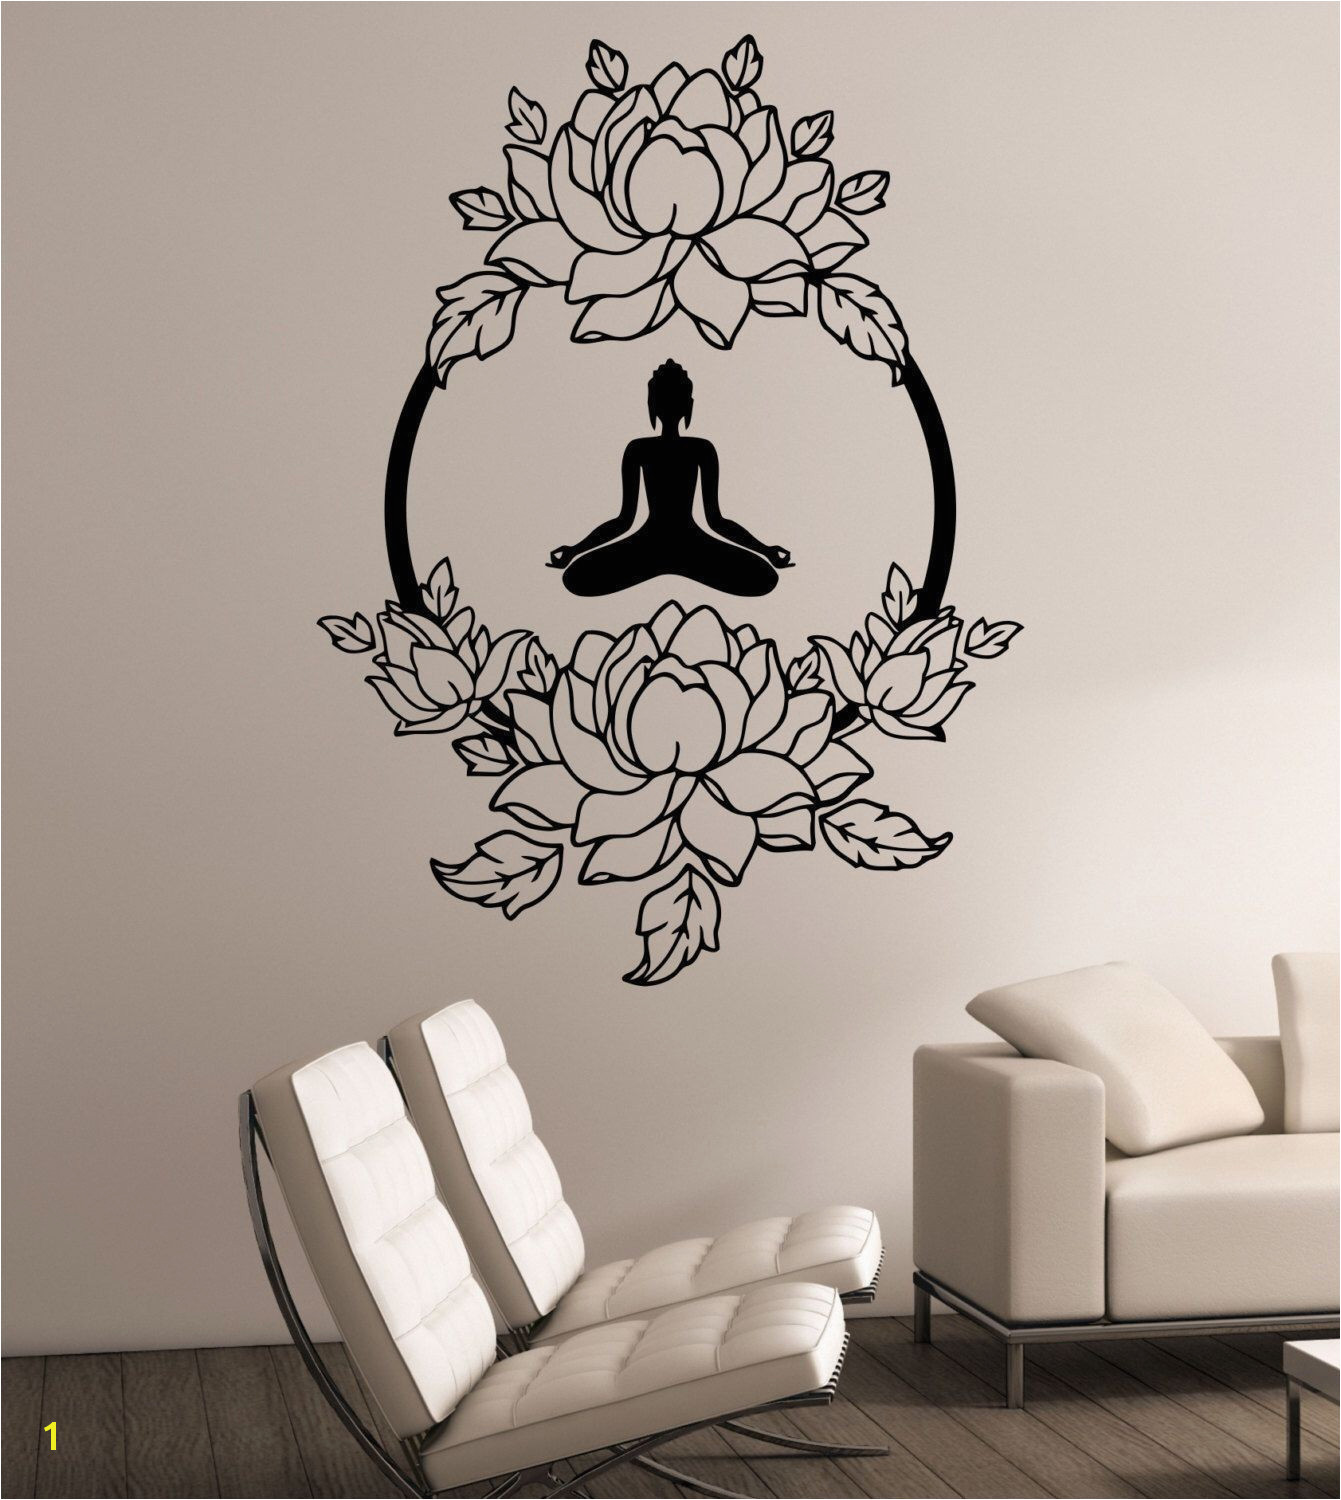 Inexpensive Wall Decor New Wall Decal Luxury 1 Kirkland Wall Decor Home Design 0d Outdoor